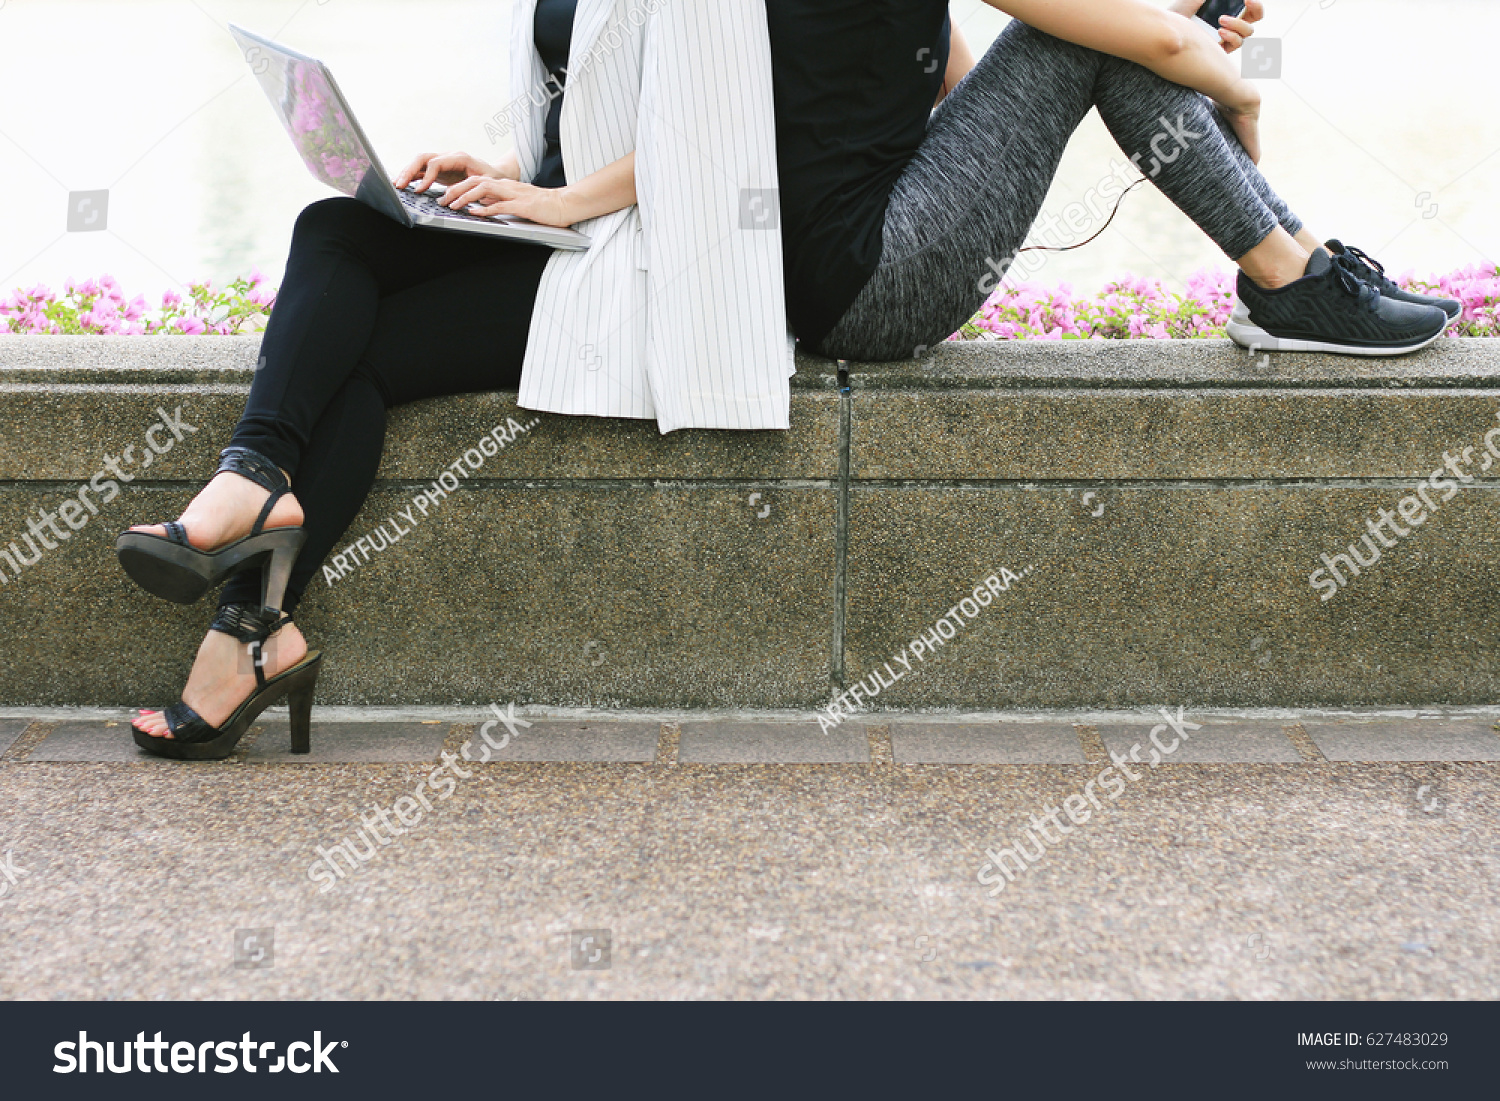 Business woman working on the laptop computer sitting near the relaxing sport woman in city park, Life balance concept, Workaholic and healthy lifestyle. #627483029